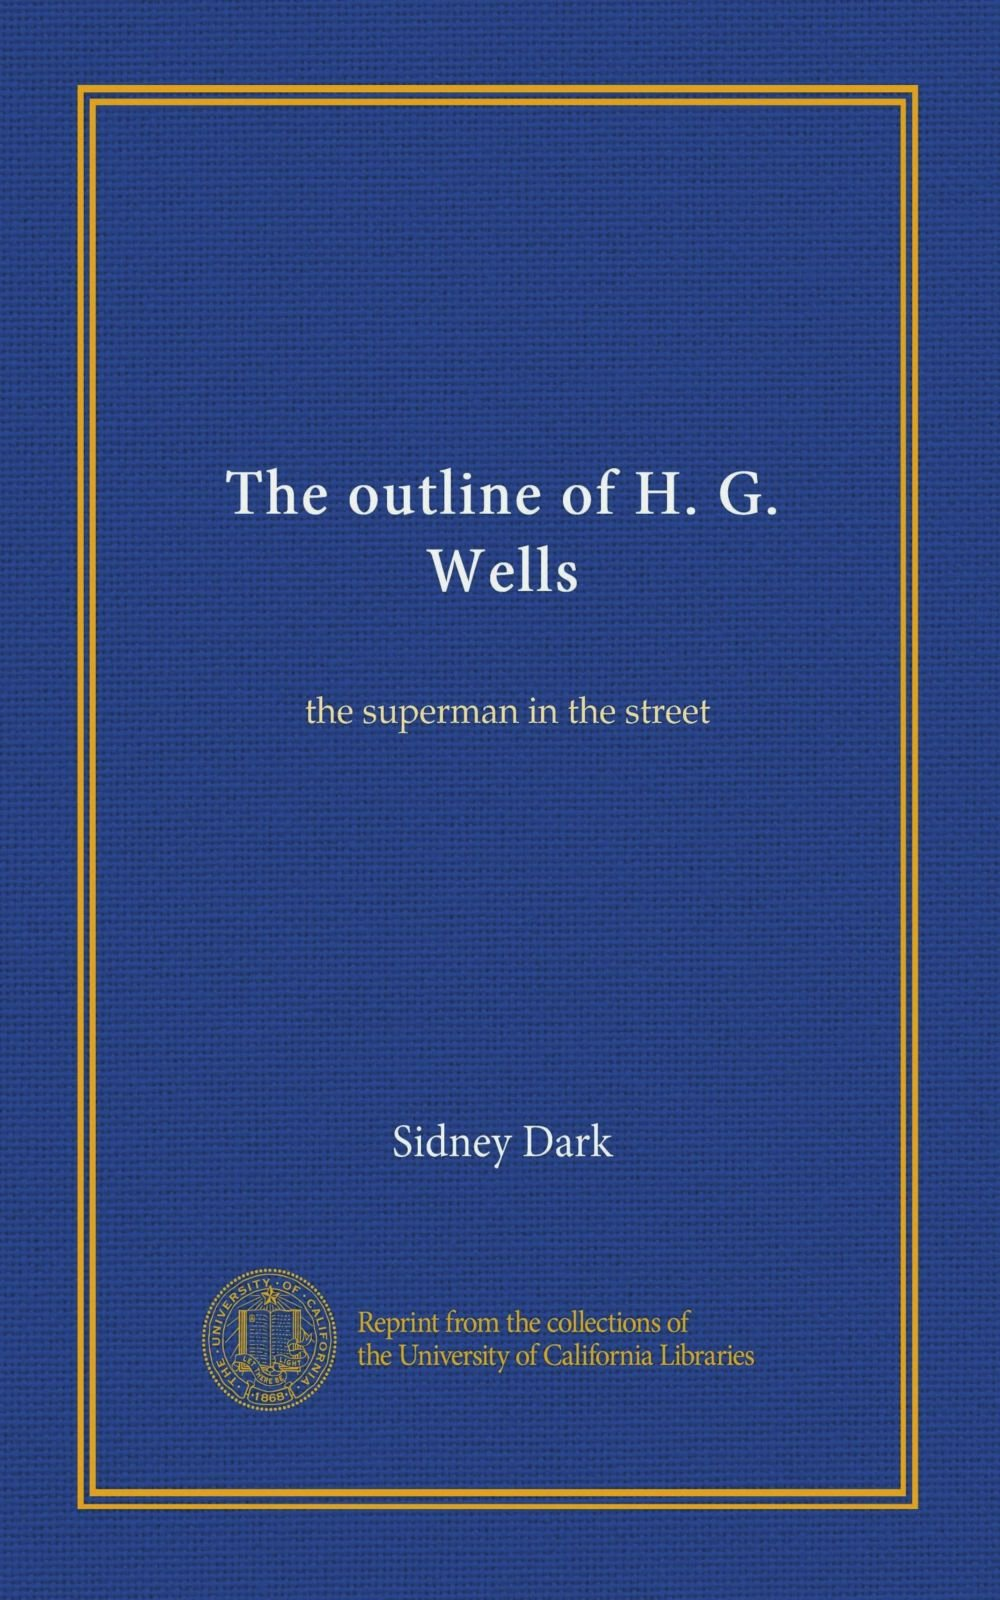 Download The outline of H. G. Wells: the superman in the street ebook